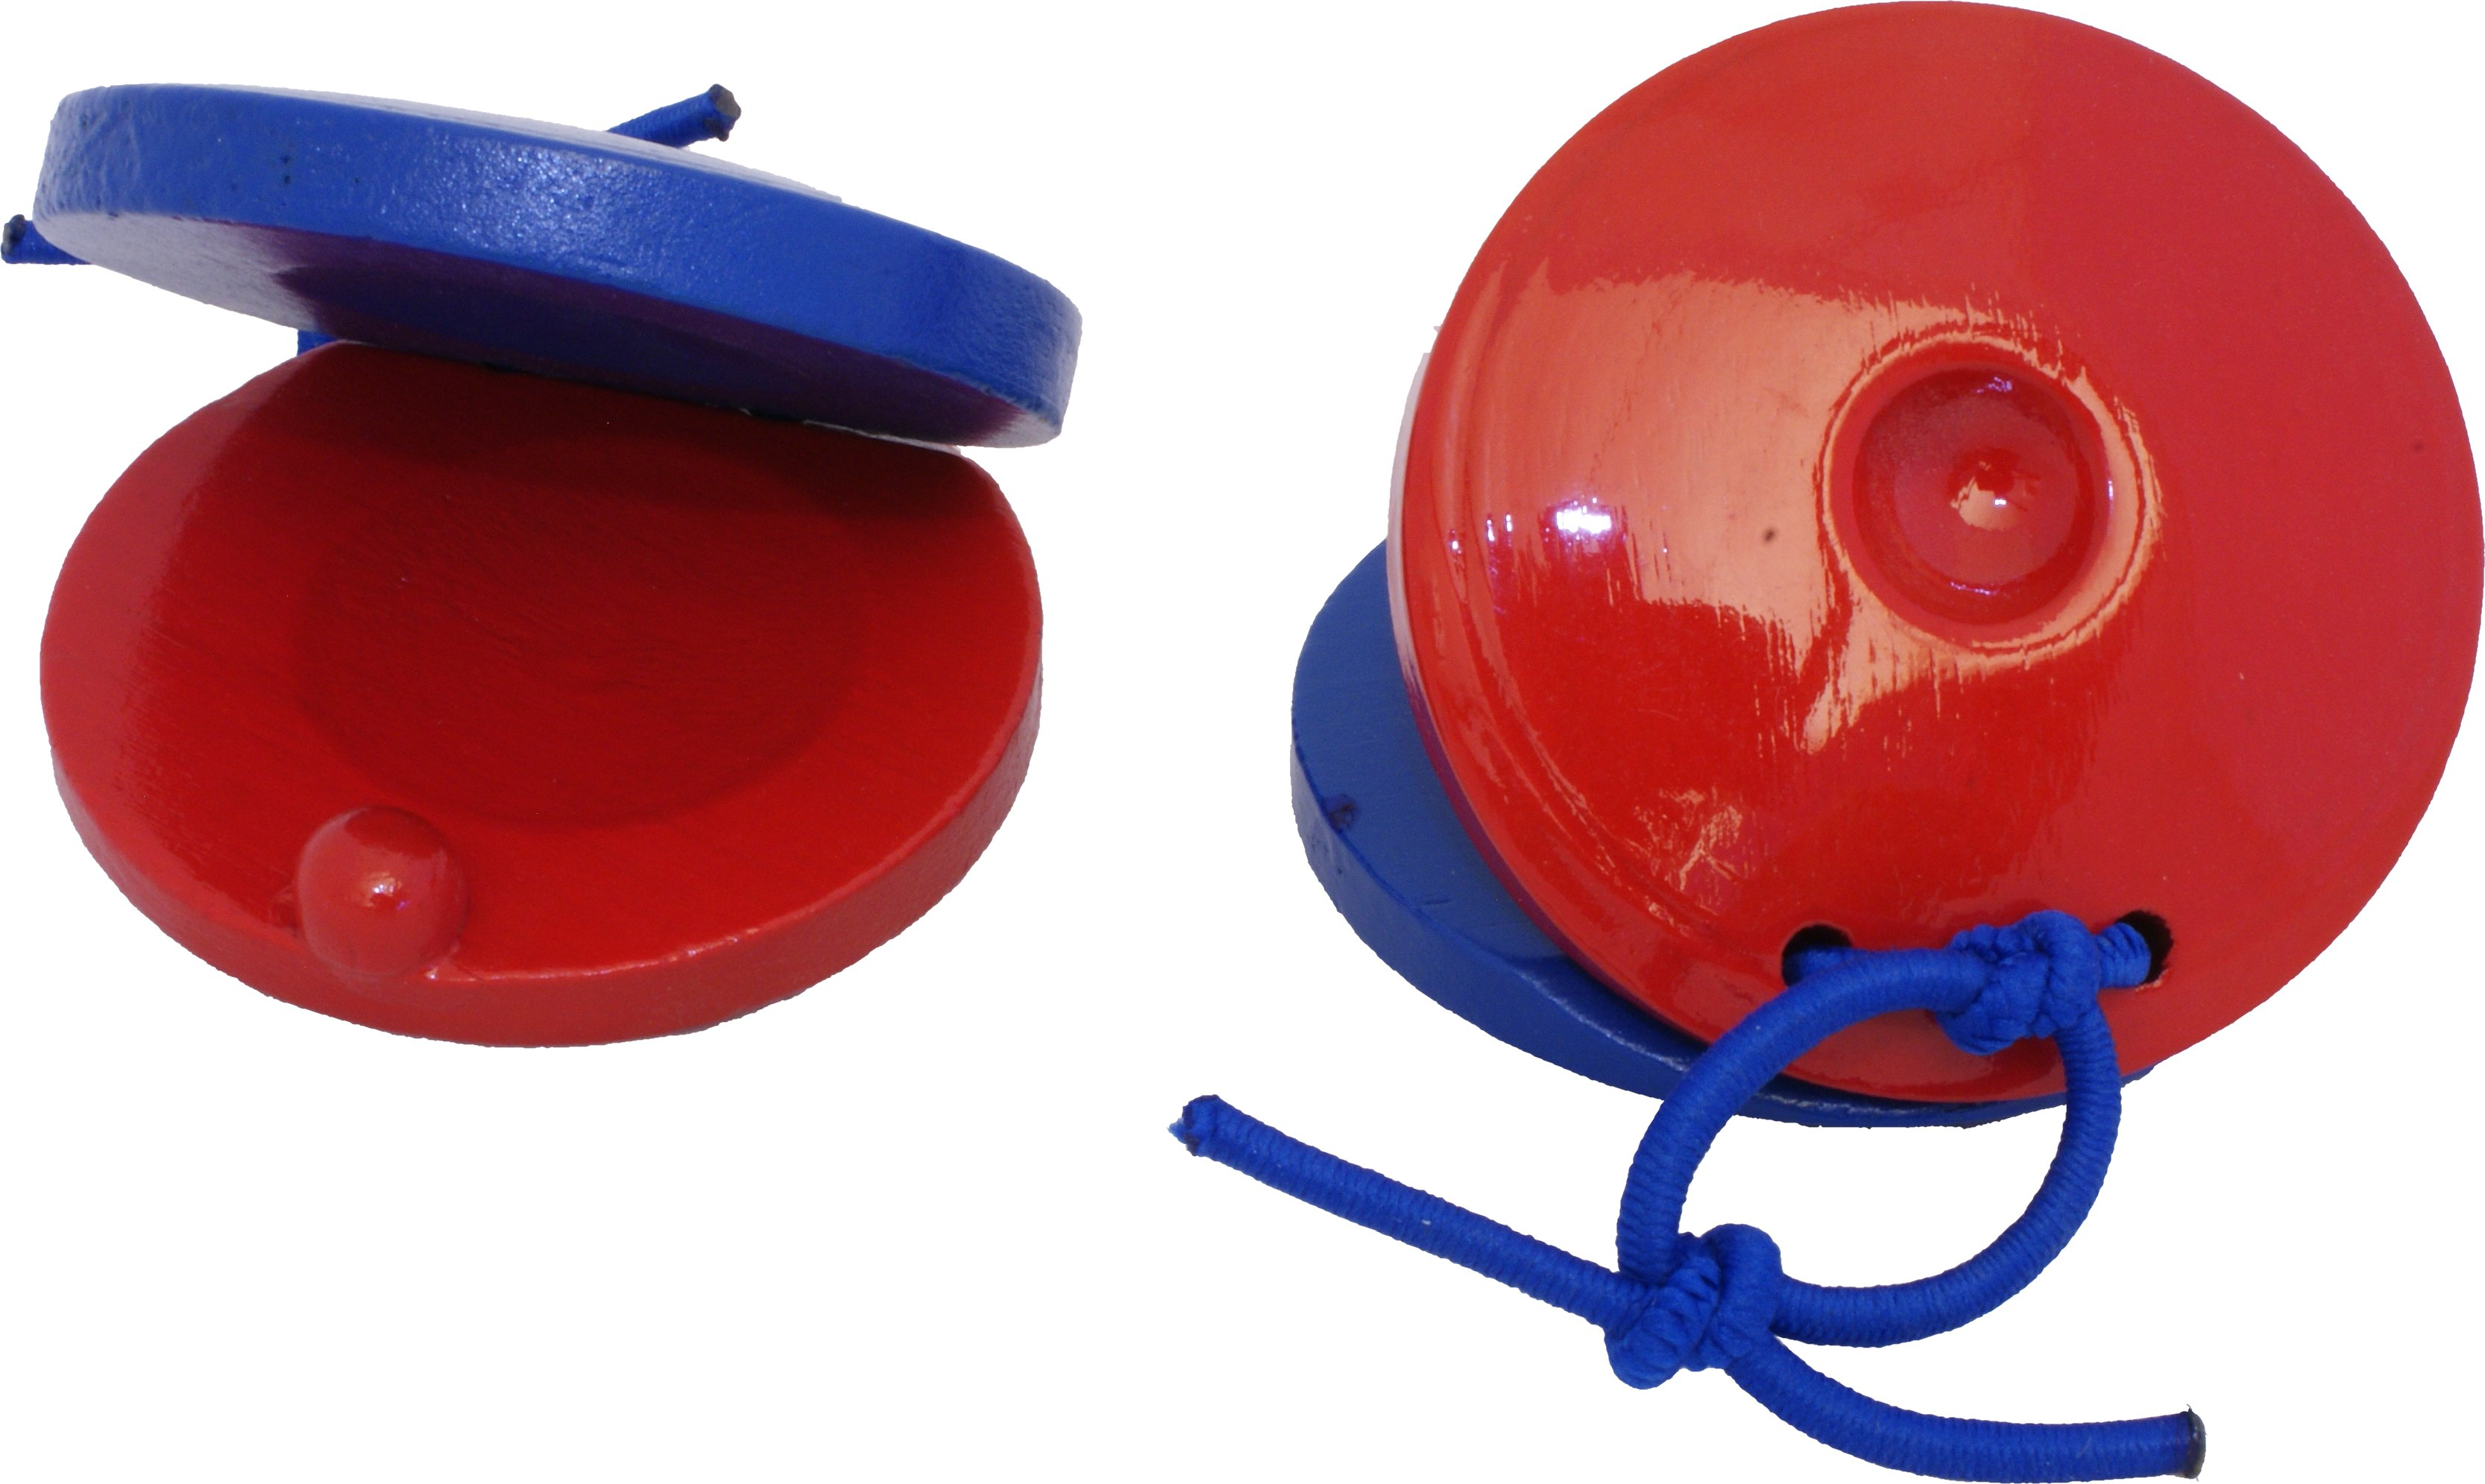 Pair Of Wooden Castanets: Percussion